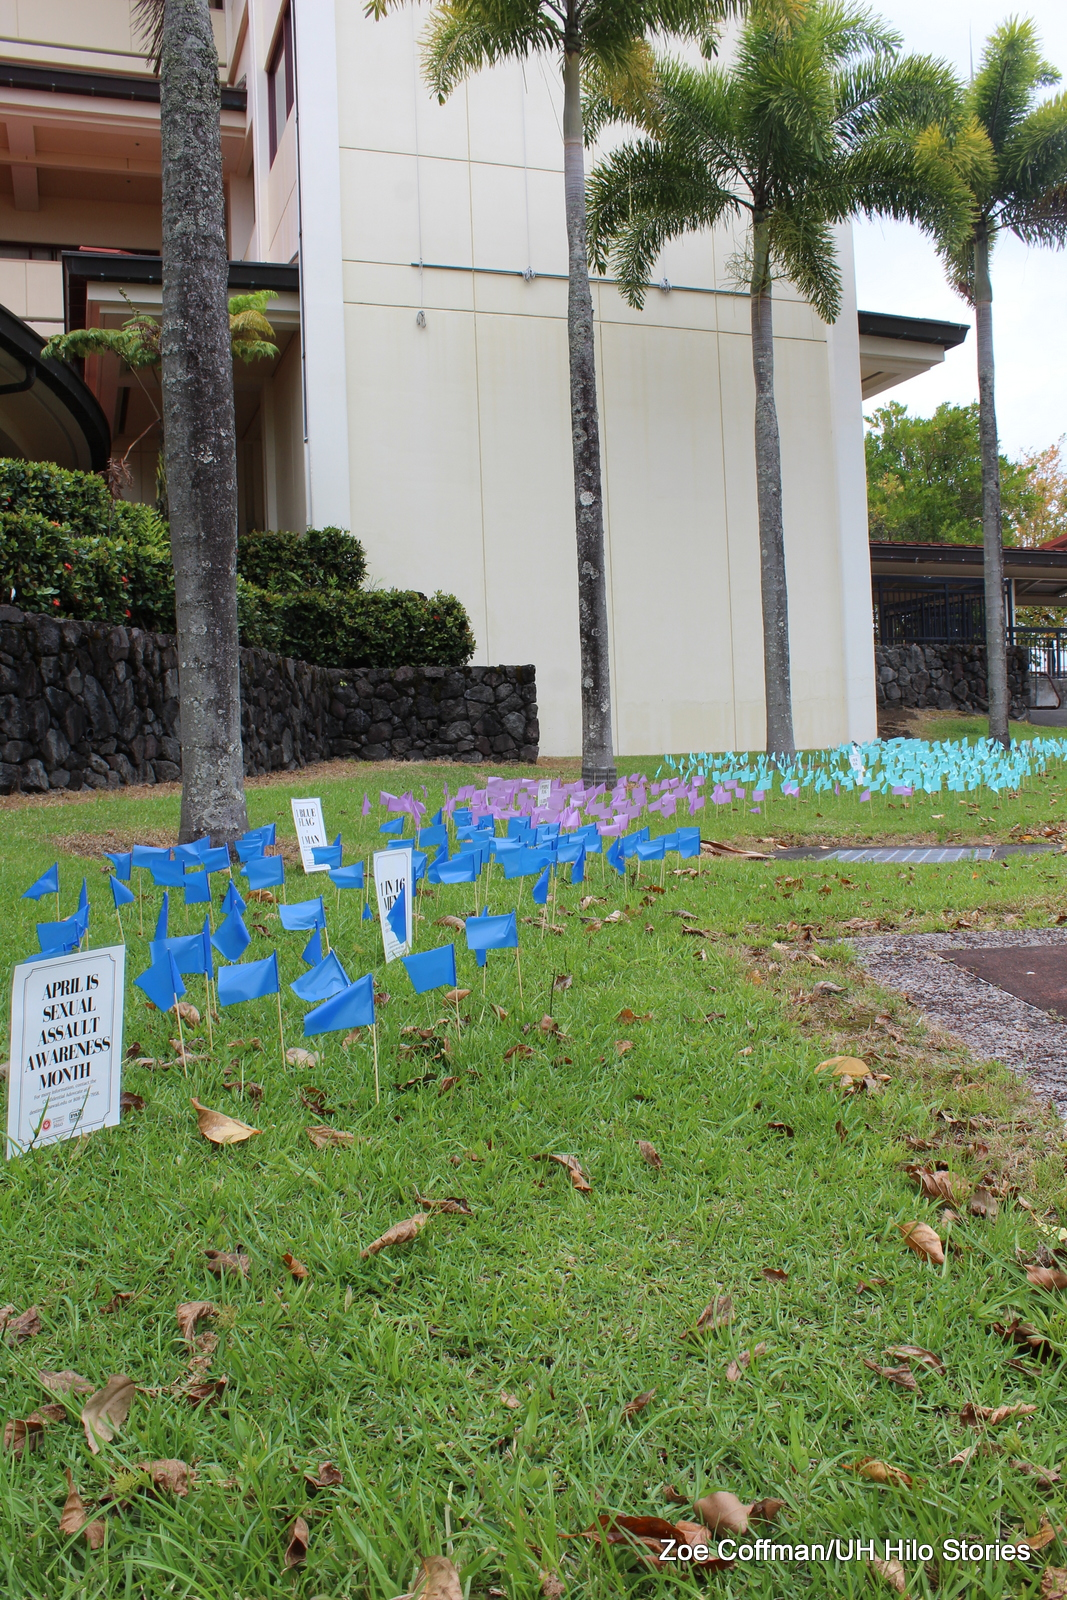 Flag display on lawn. Flags are pinned into the lawn with signs showing statistics. Palms in background. Front sign: APRIL IS SEXUAL ASSAULT AWARENESS MONTH.